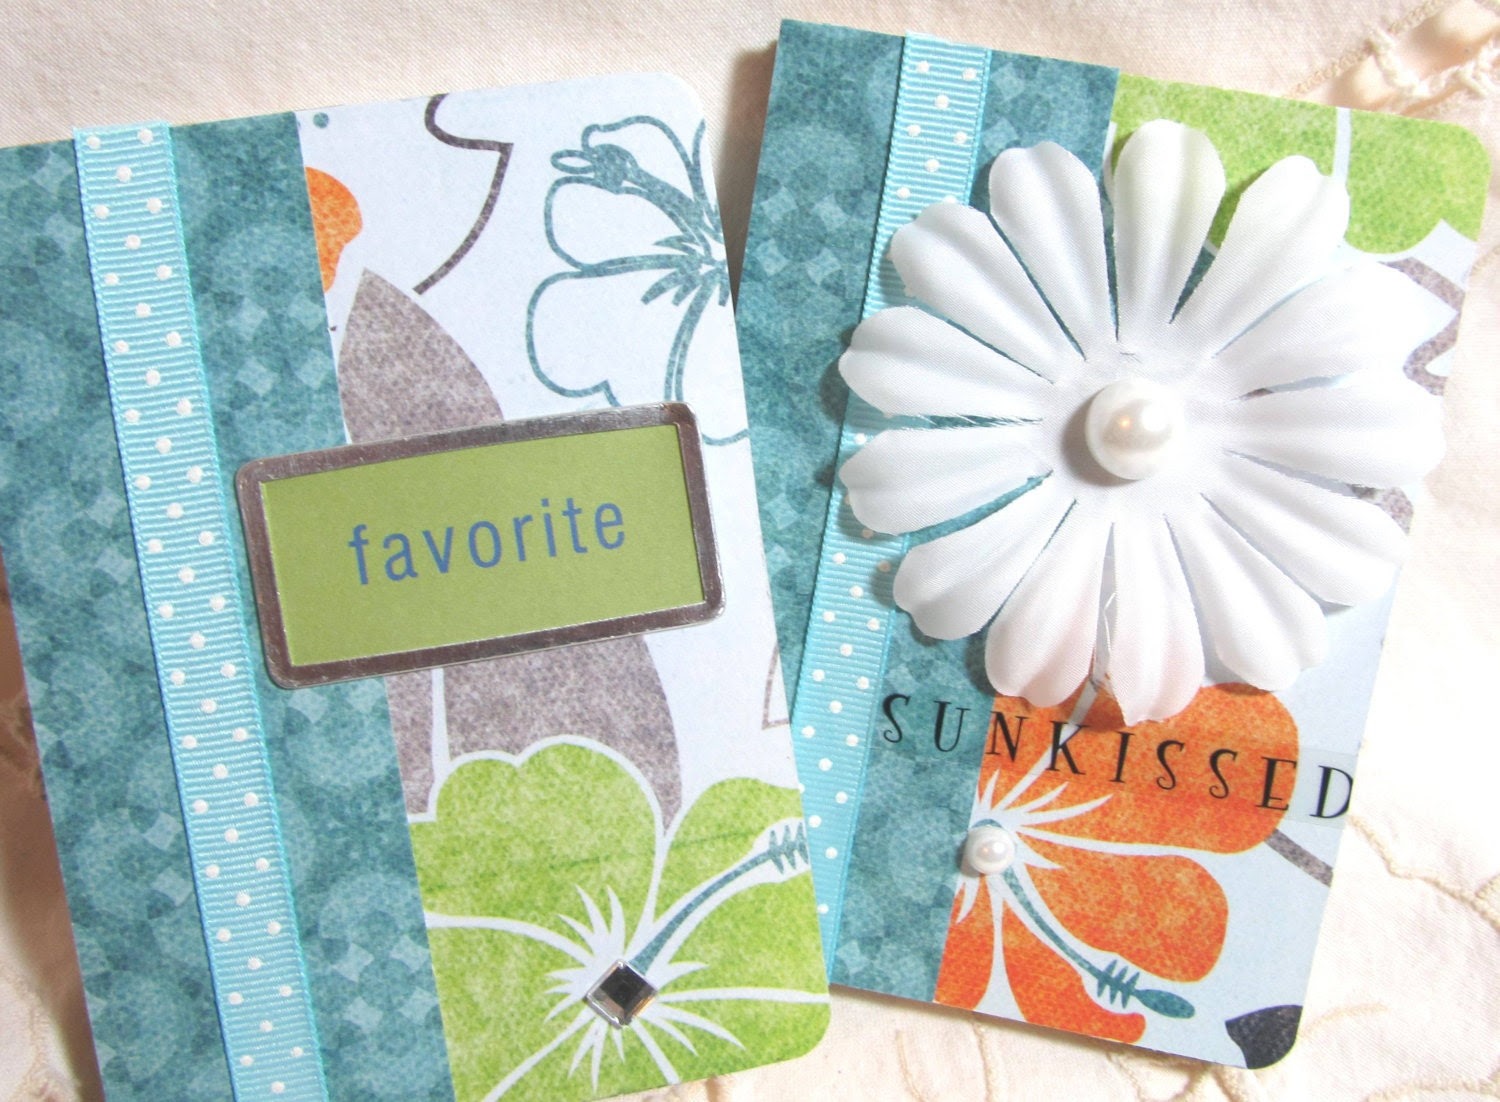 Altered Mini Journal - Altered Mini Notebook - Colorful Notebook - Tropical Print - Stocking Stuffers - Turquoise Notebook - Little Journals - PrettyByrdDesigns